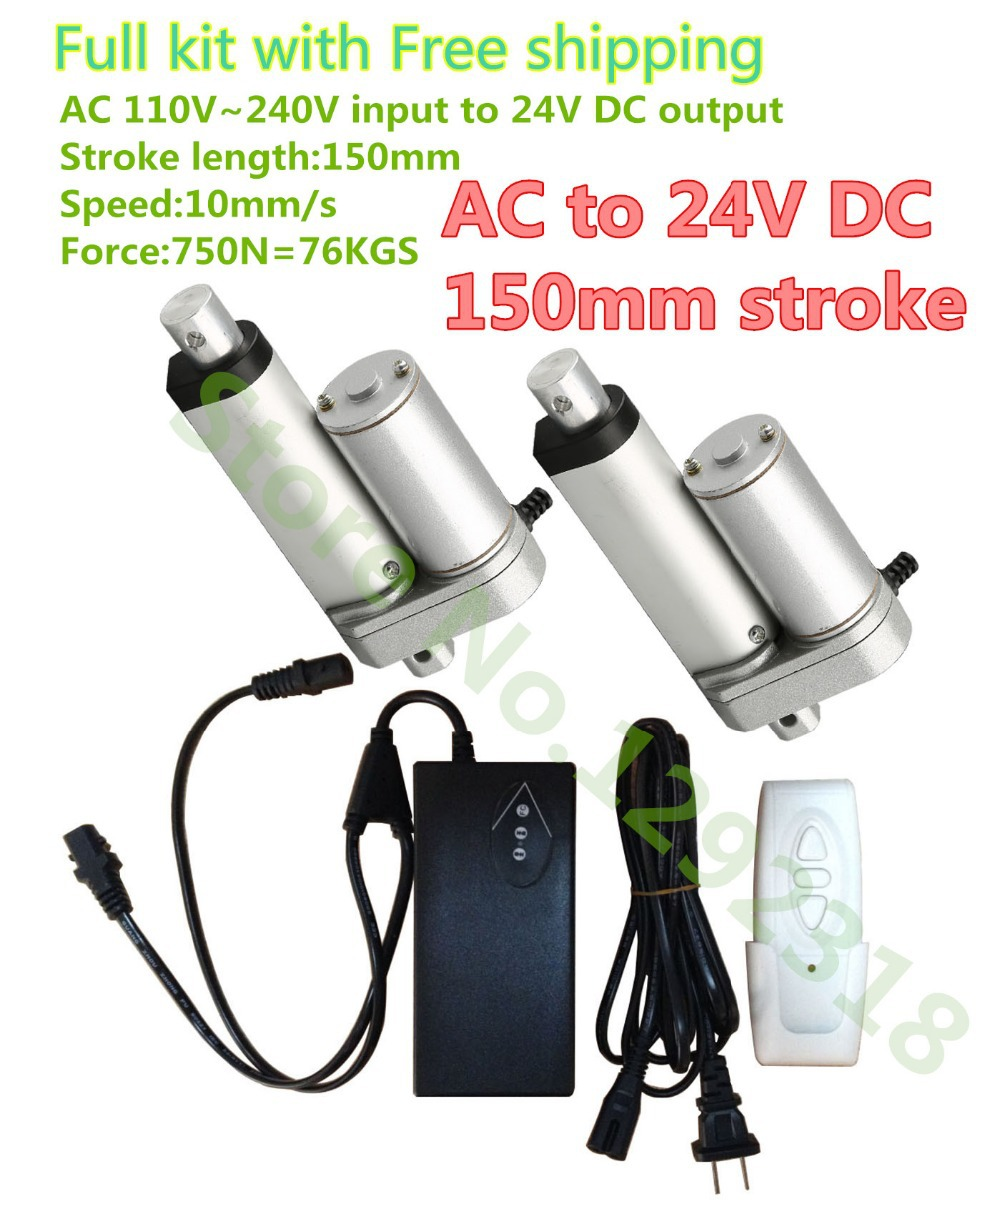 "24V DC wireless control system 150mm stroke=6"" 24V DC linear actuators remotes controller for home appliance etc.(China (Mainland))"